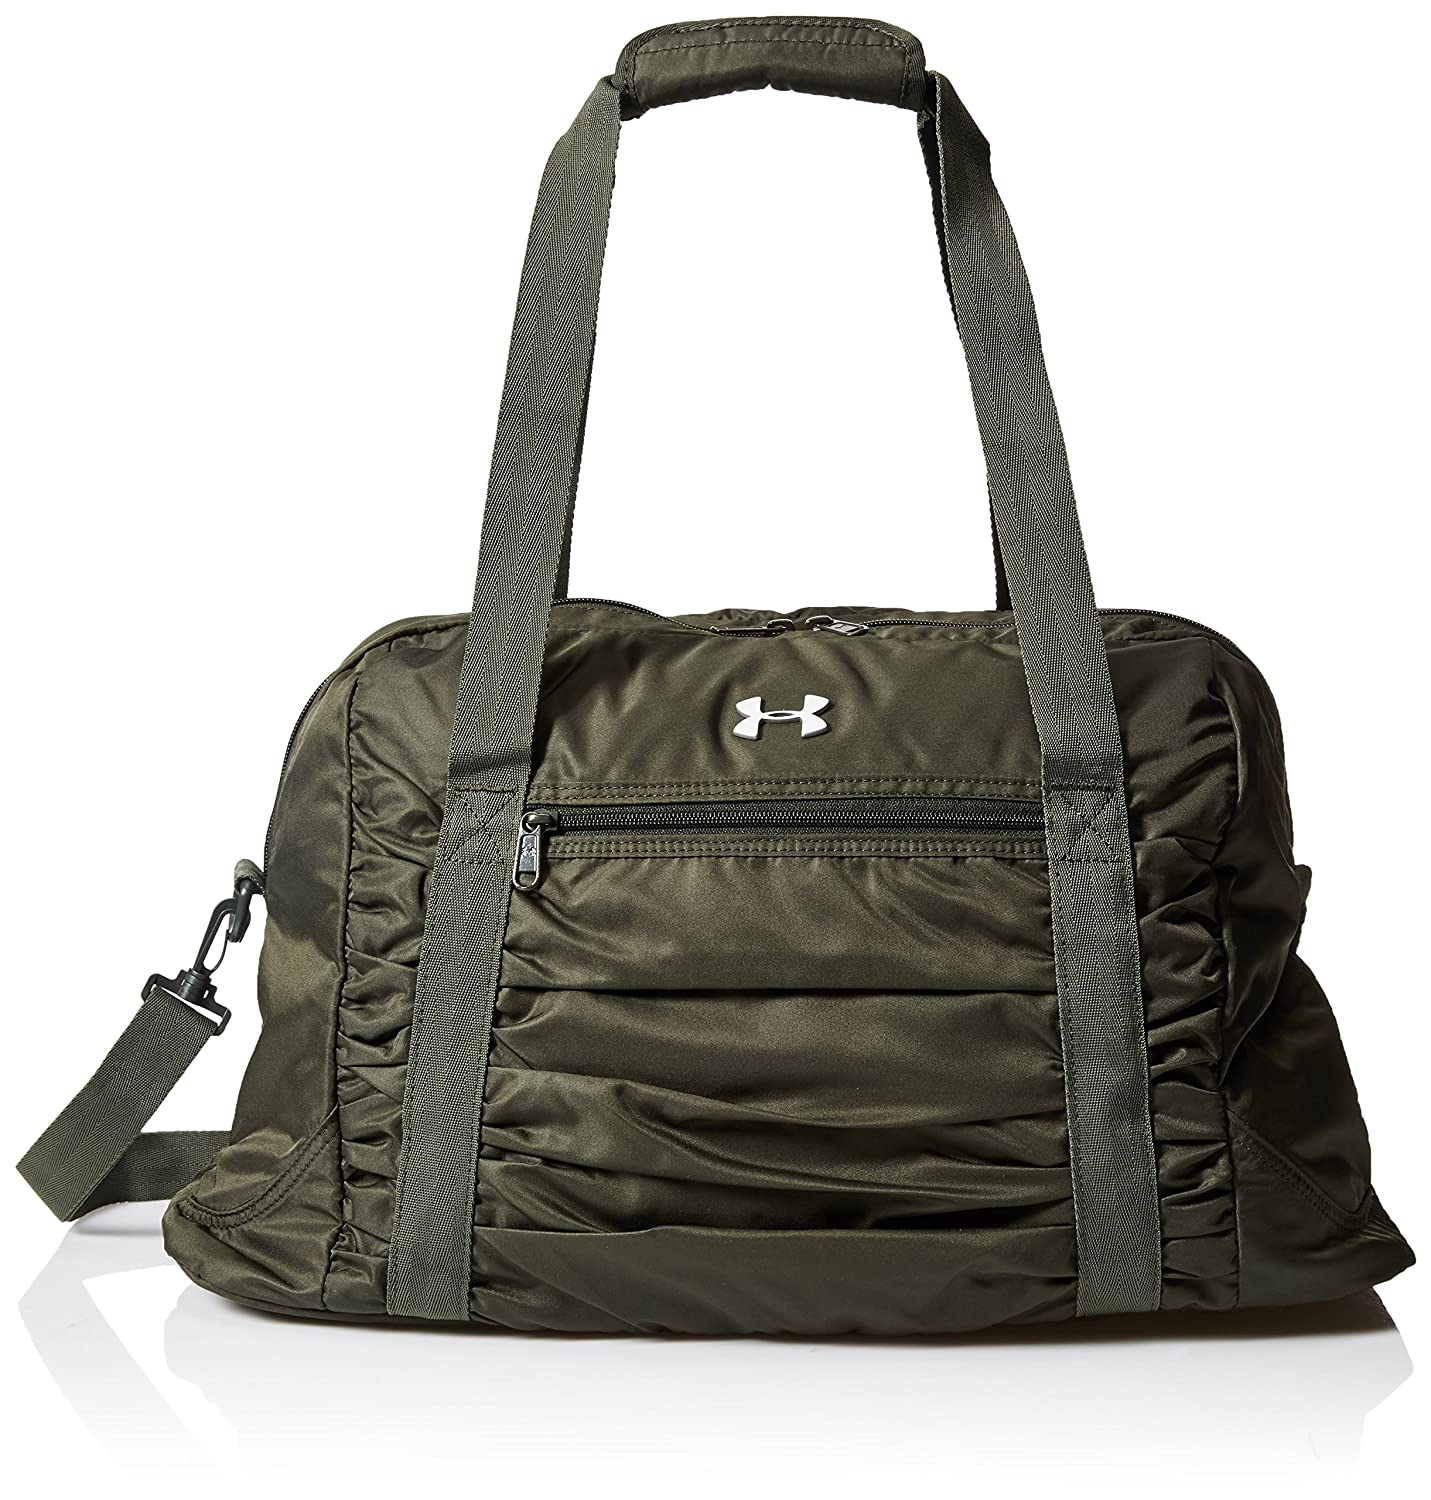 Under Armour Womens The Works Gym Bag